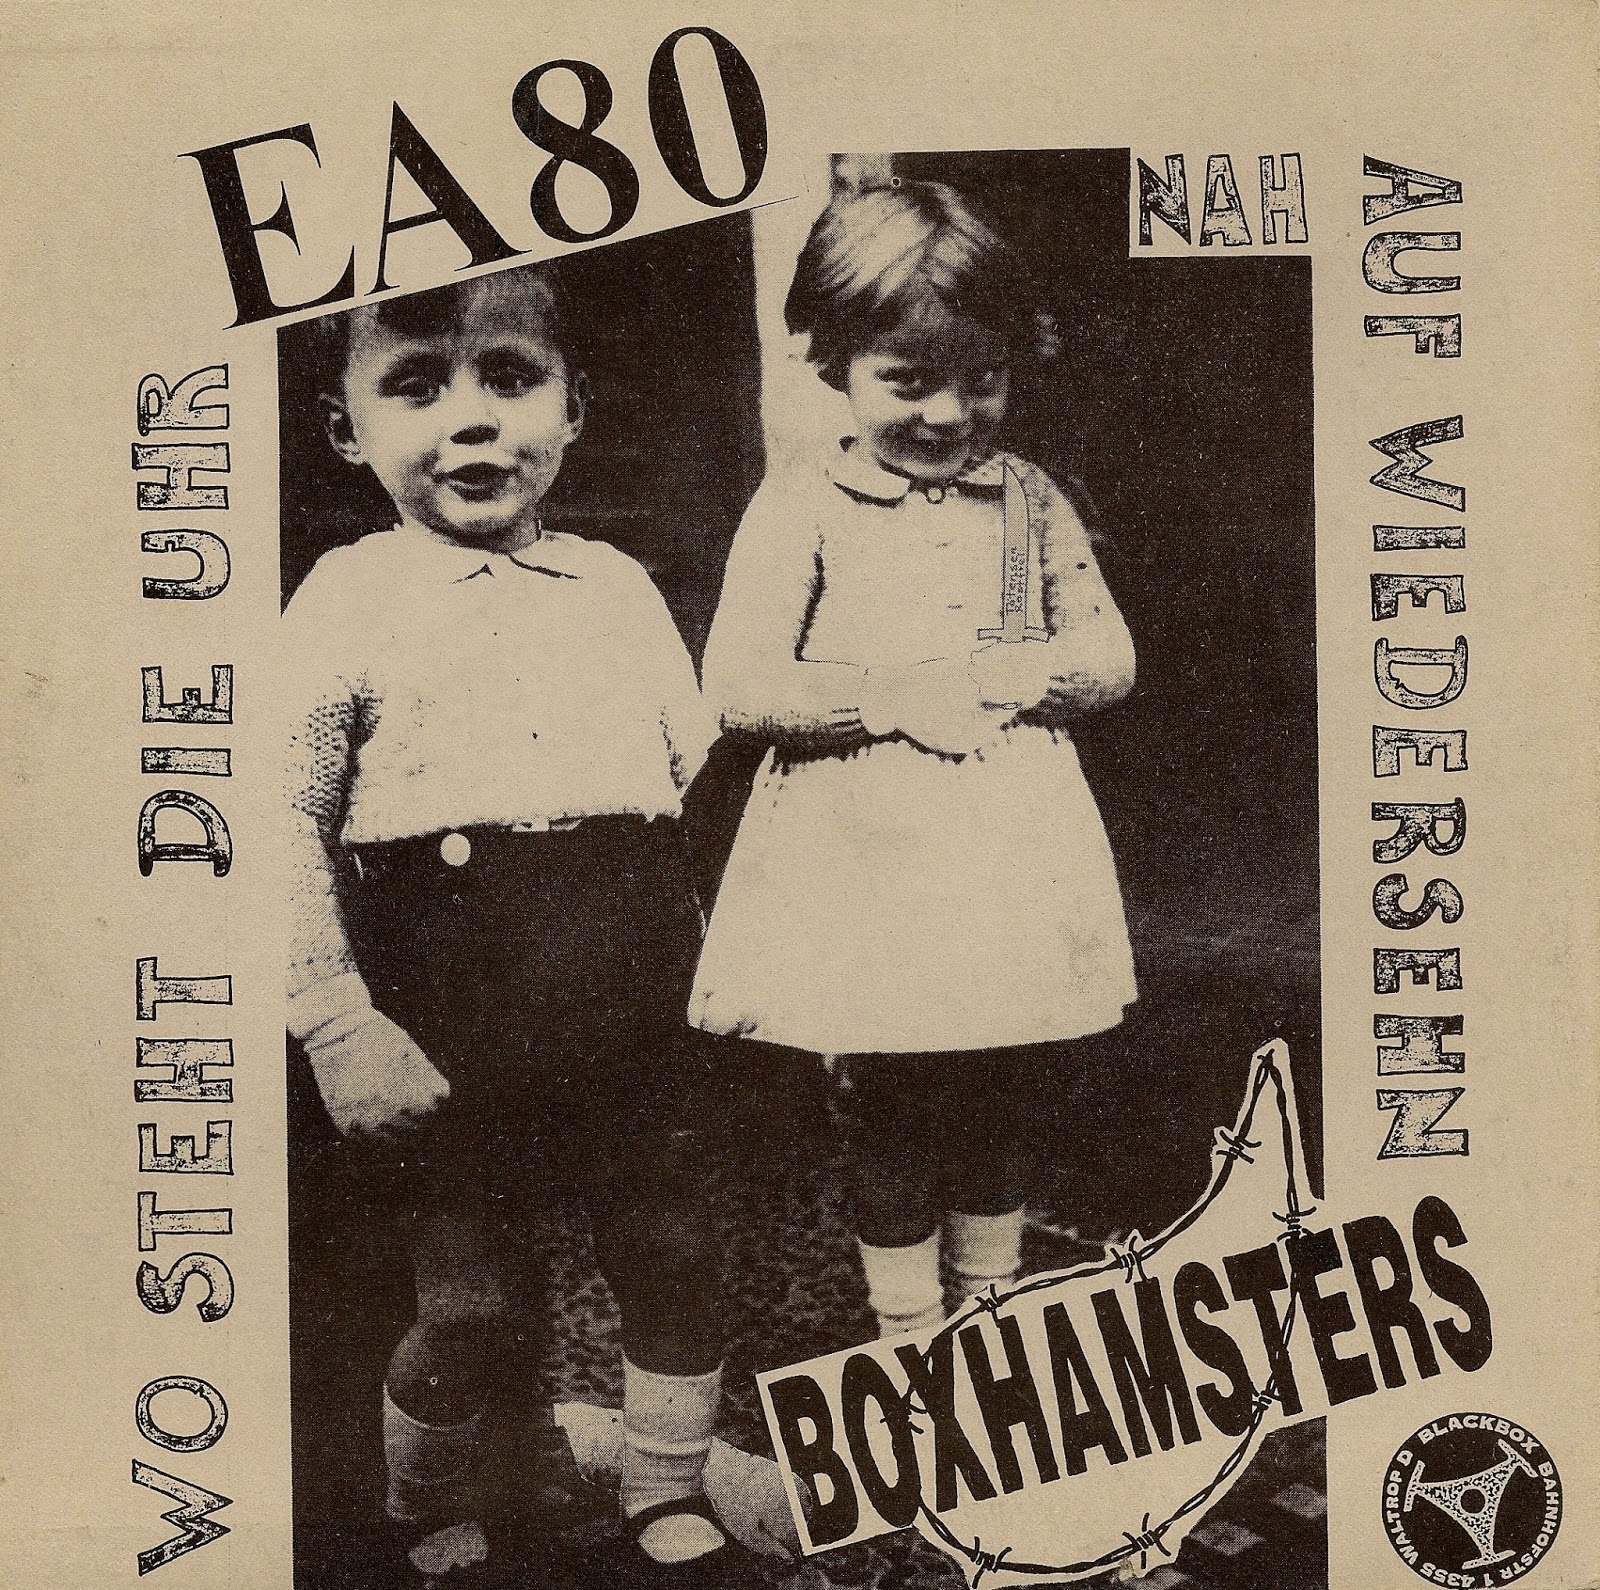 EA80 / Boxhamsters - Split